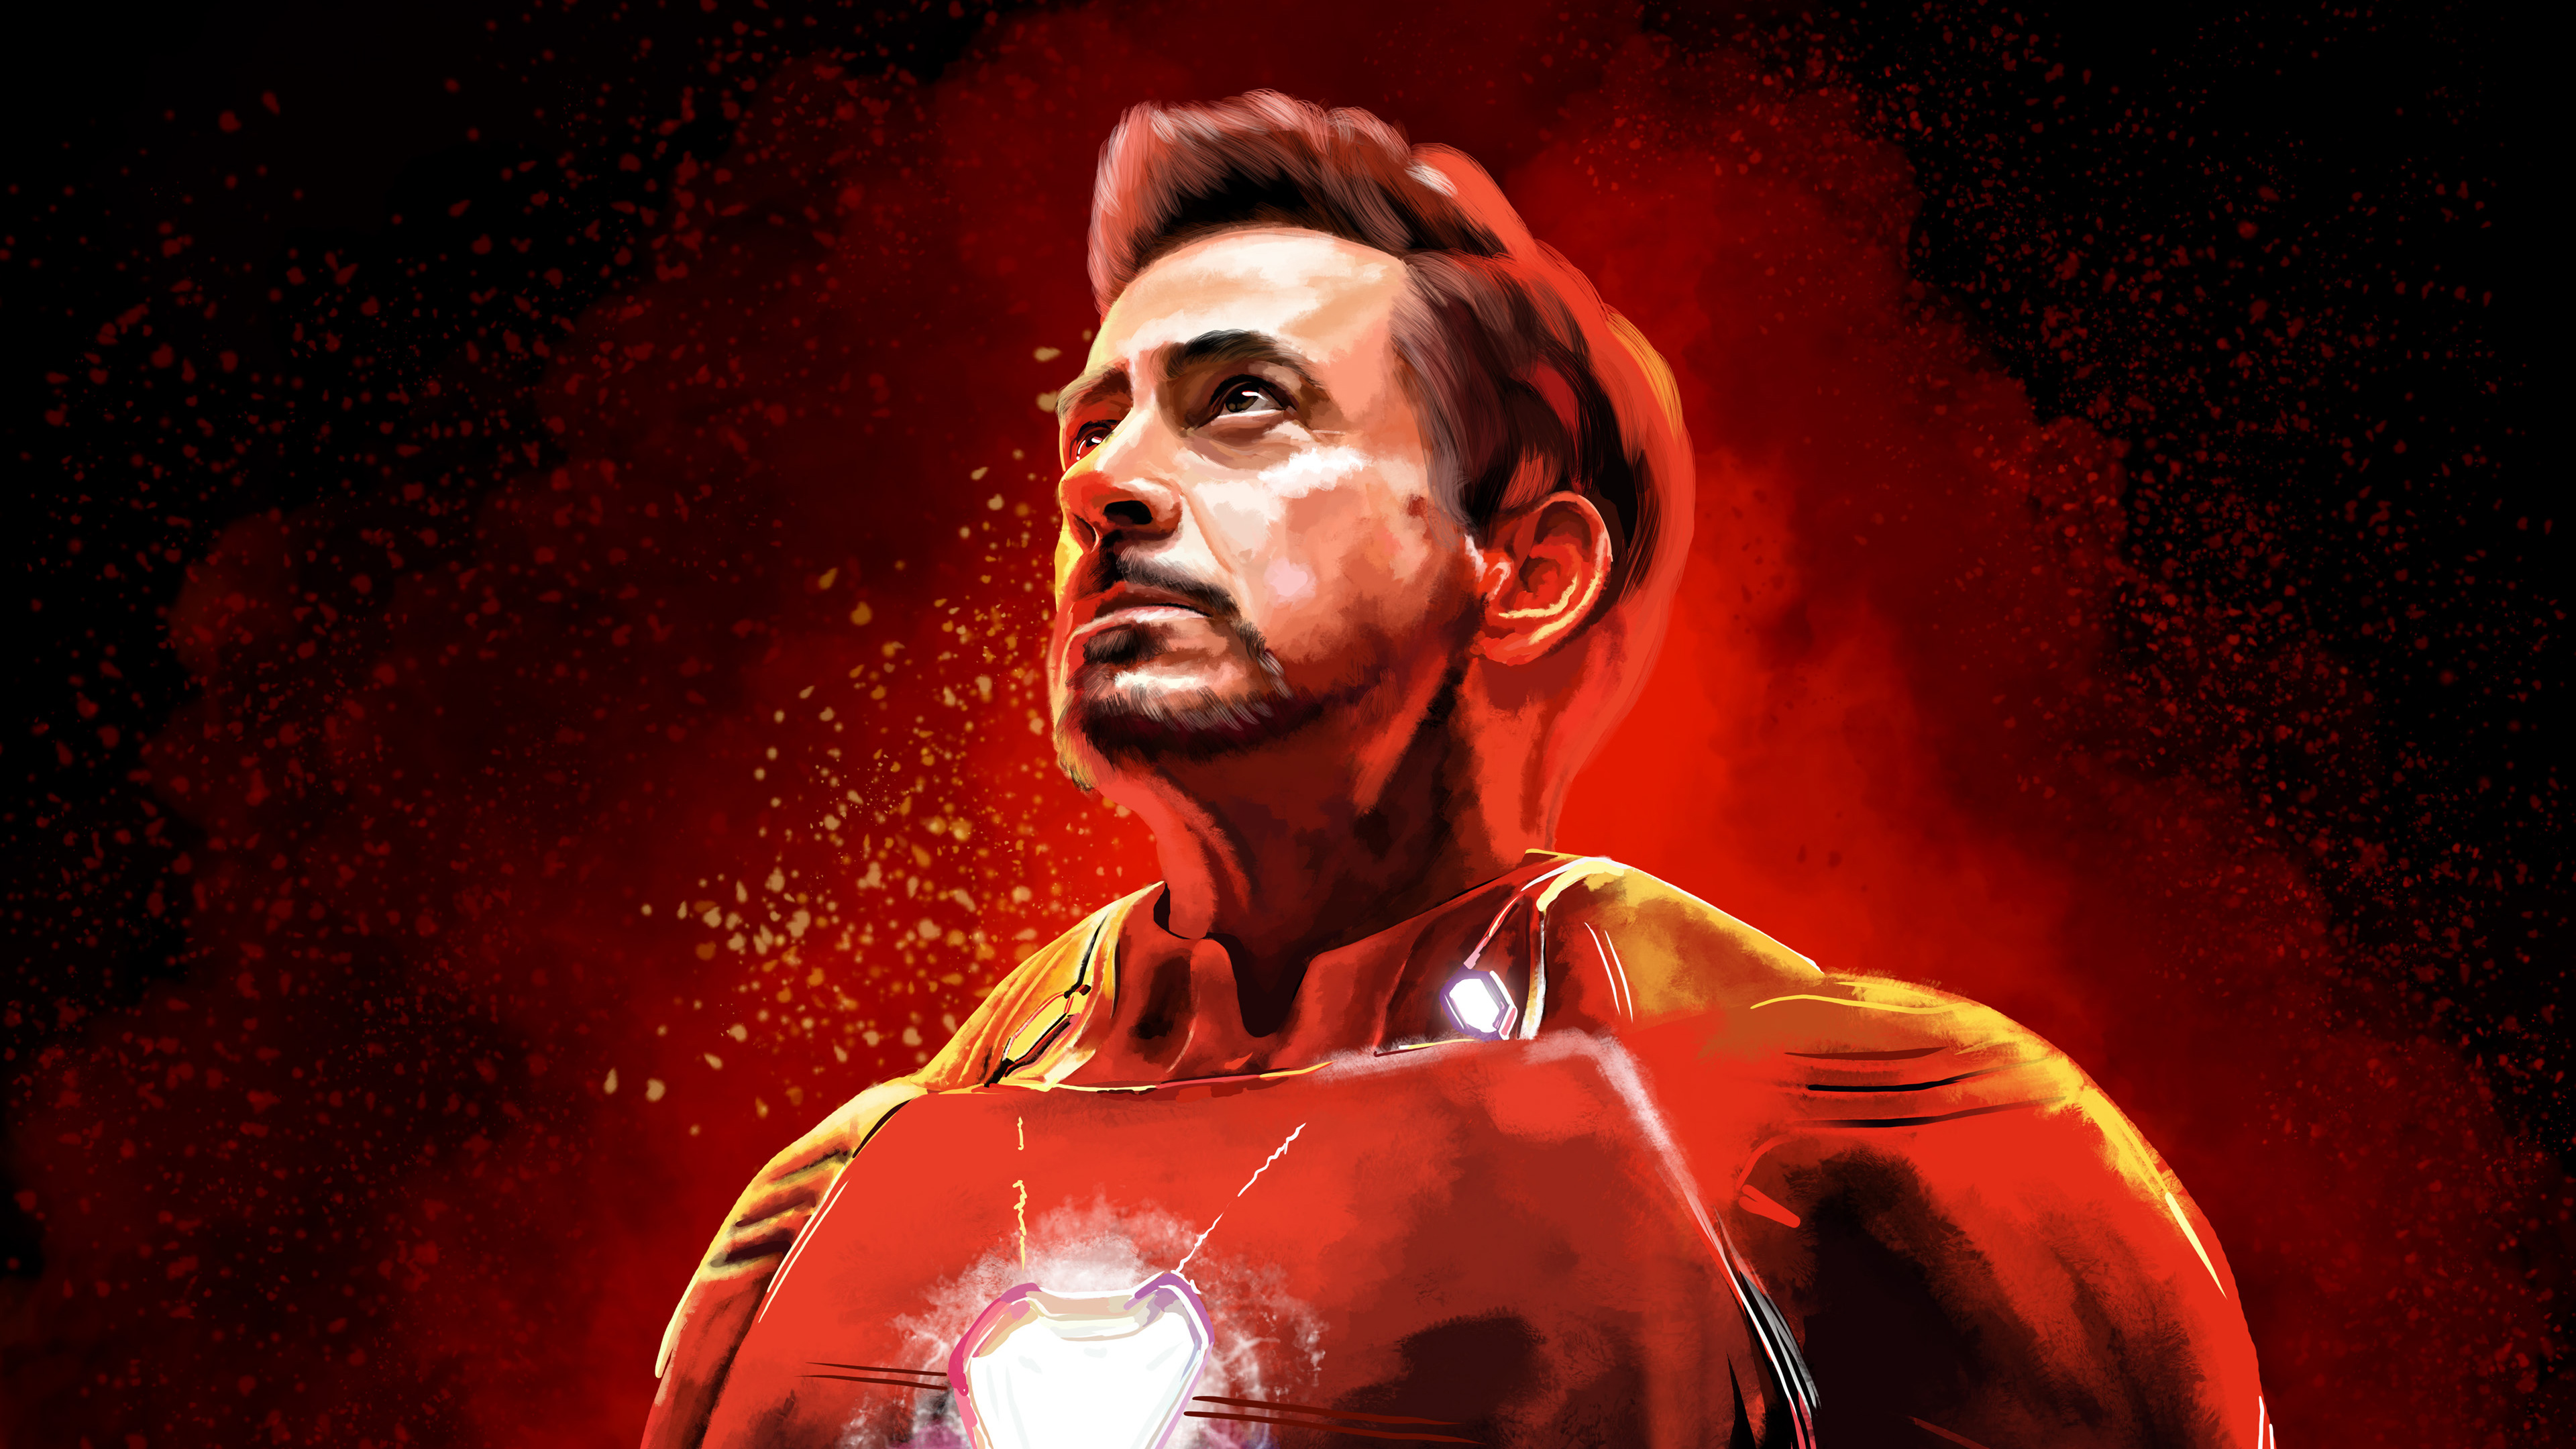 iron man robert downey 1572368498 - Iron Man Robert Downey - superheroes wallpapers, iron man wallpapers, hd-wallpapers, digital art wallpapers, behance wallpapers, artwork wallpapers, 4k-wallpapers